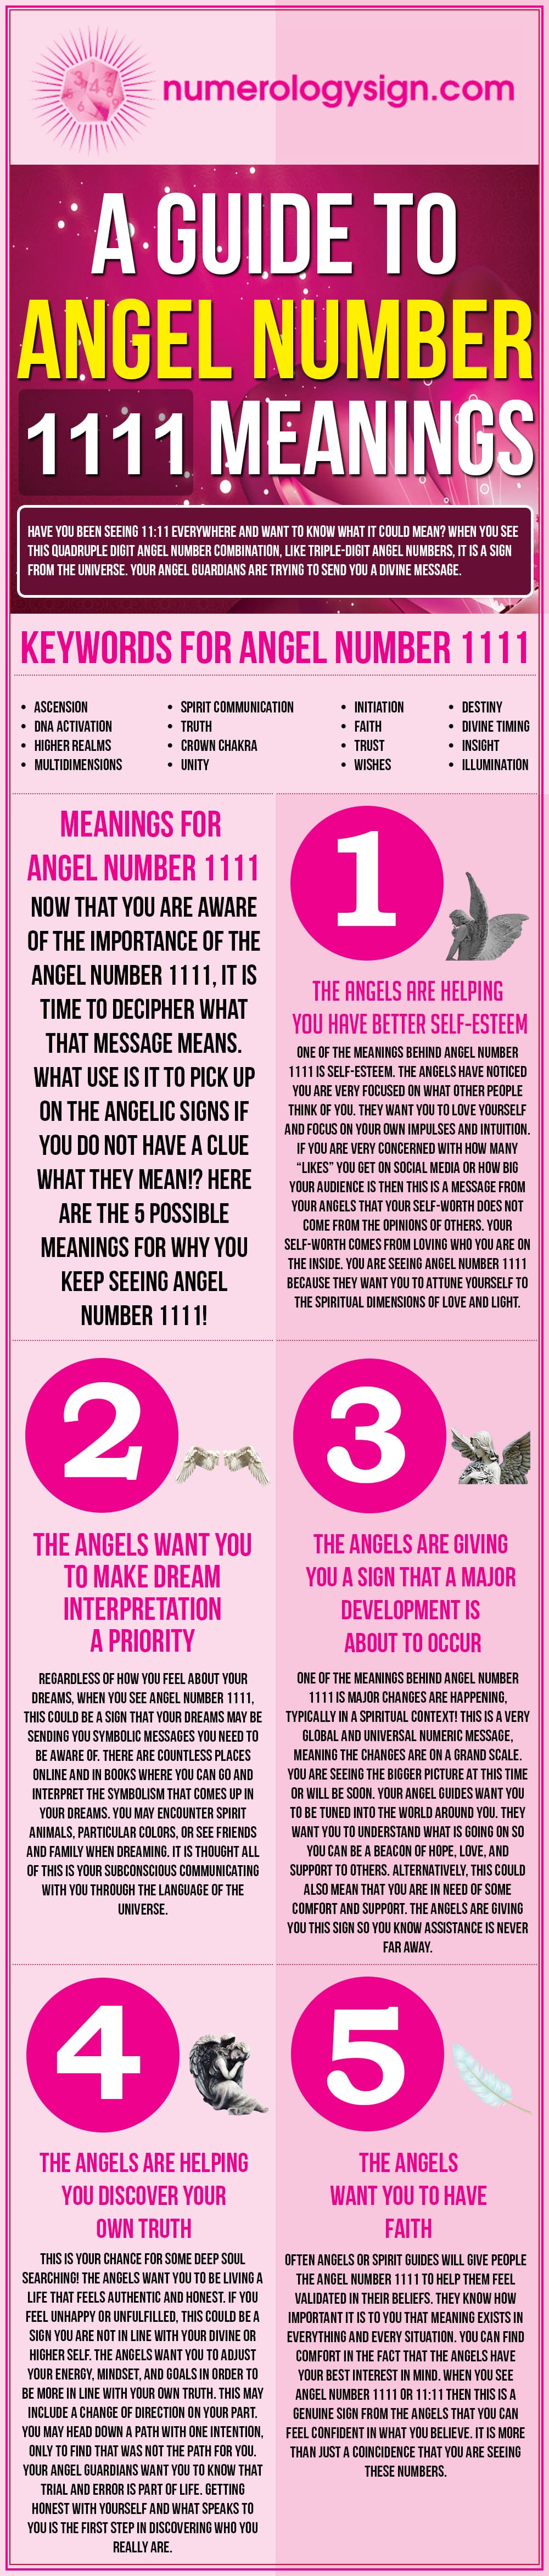 Angel Number 1111 Meanings Infographic